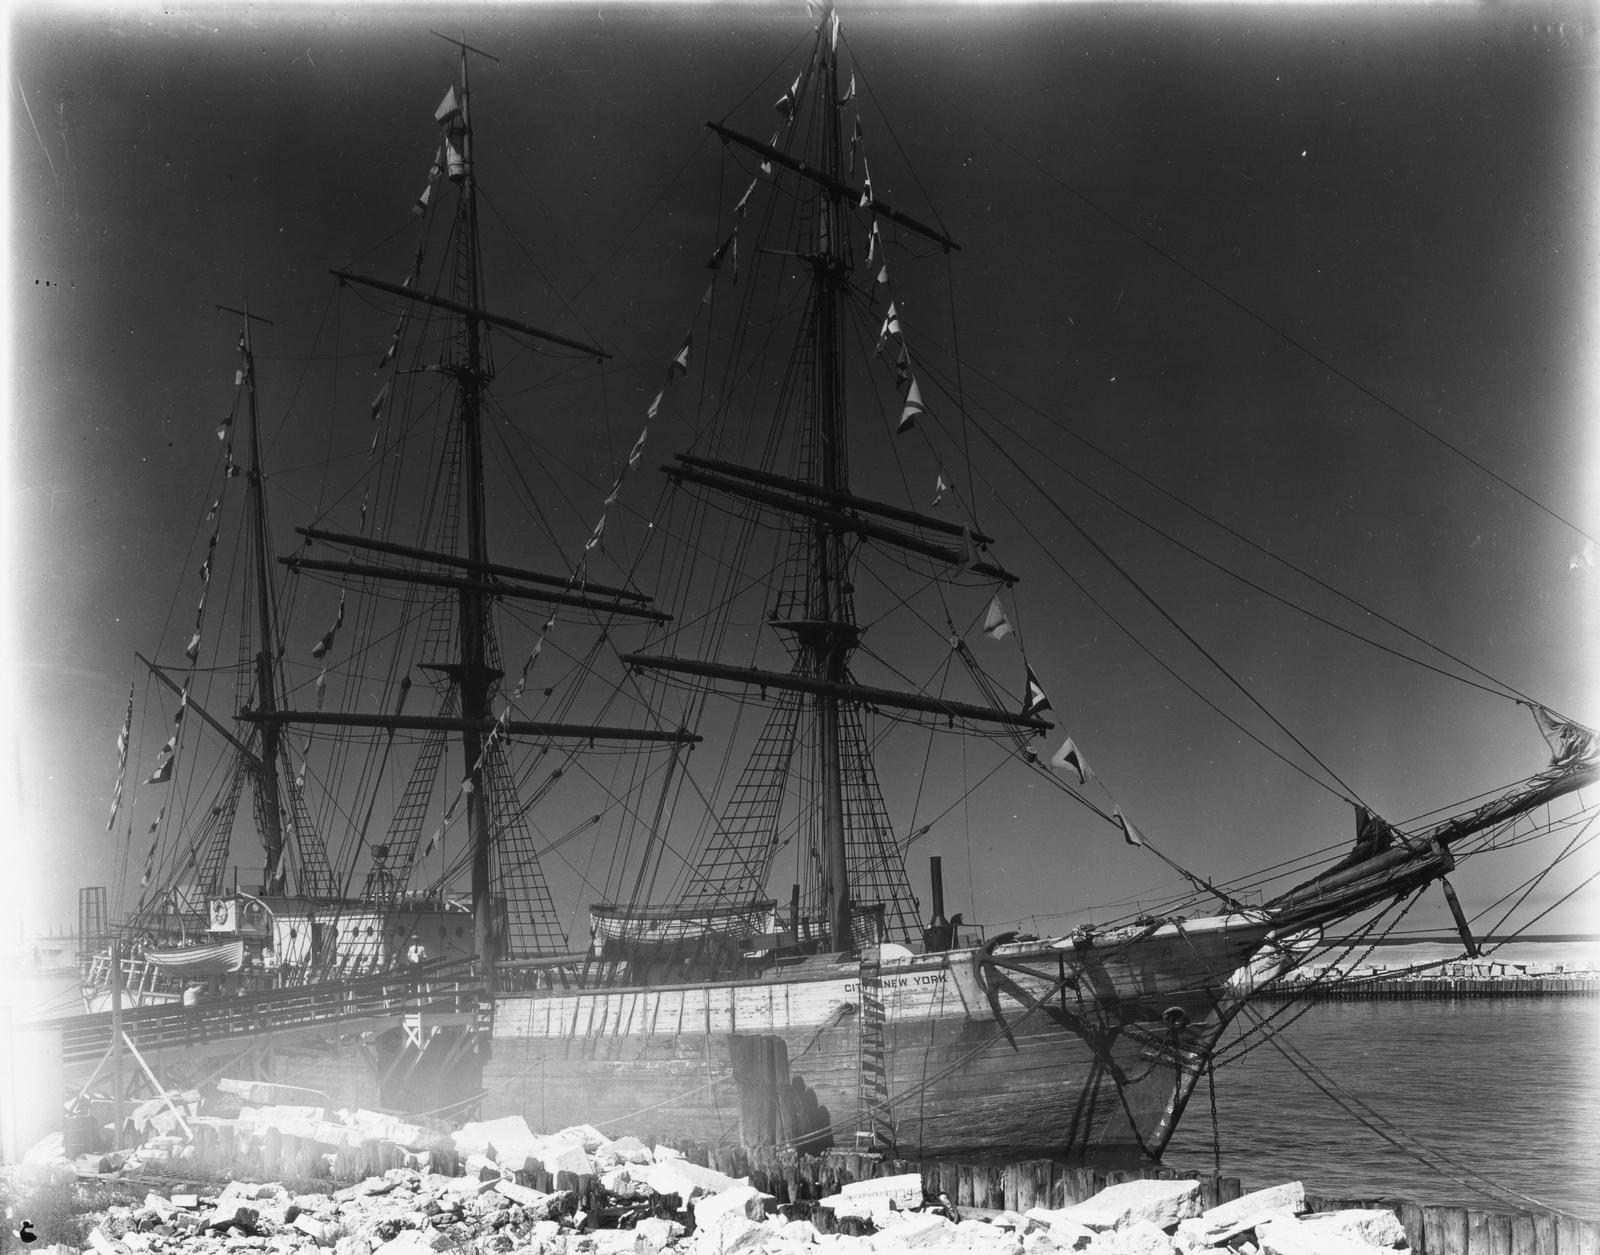 """[Admiral Byrd's flagship """"City of New York"""" arrives in Chicago for A Century of Progress. Byrd sailed the City of New York during one of his famous expeditions to the Antarctic.]"""